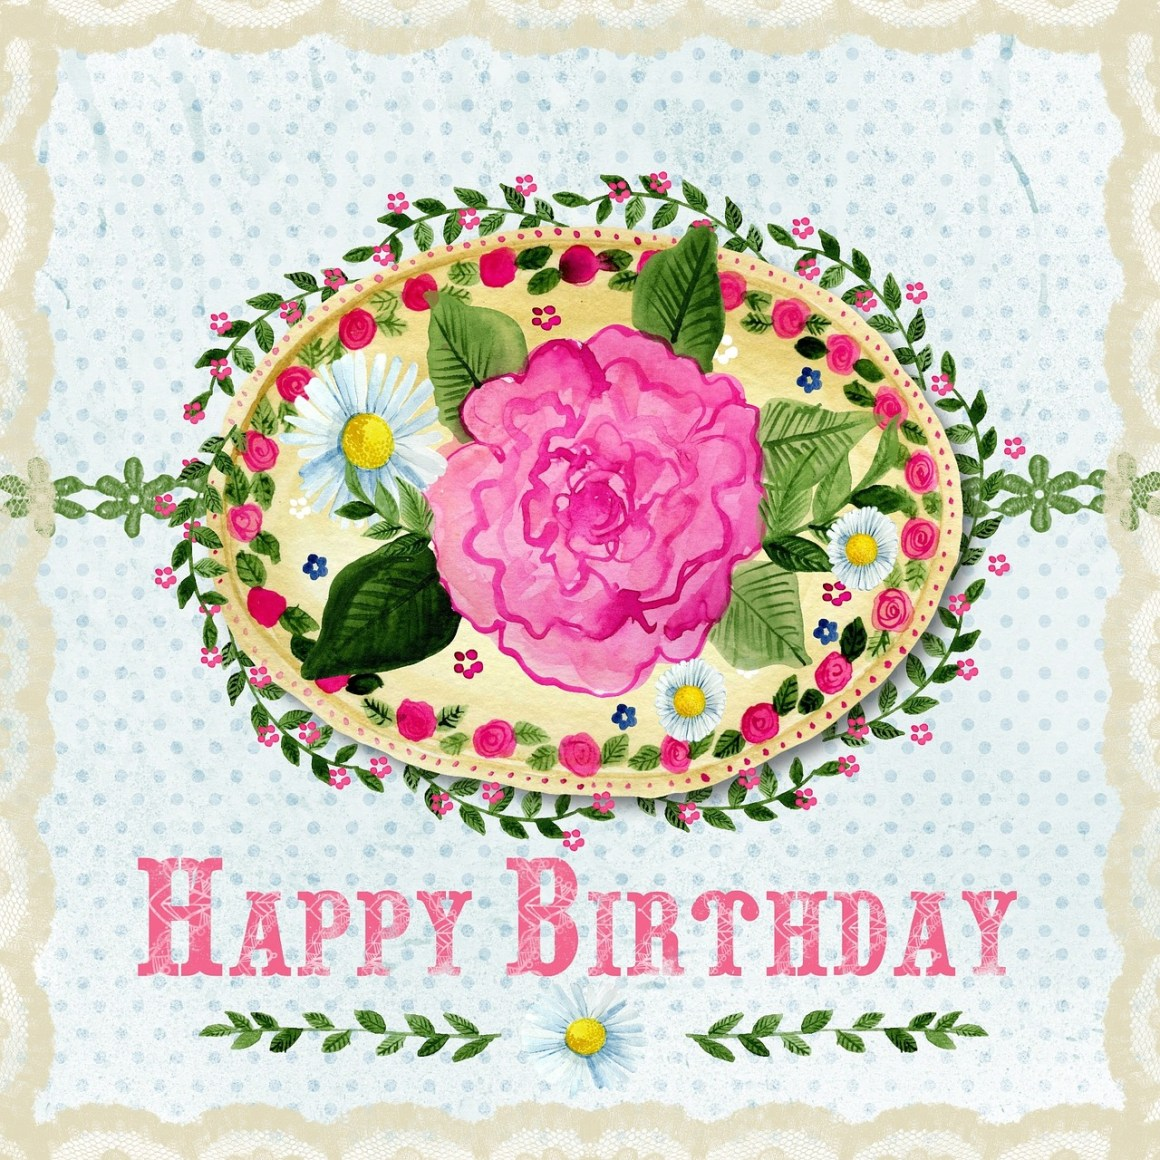 The best birthday greetings youll read top birthday greetings birthday greetings for cousin kristyandbryce Image collections